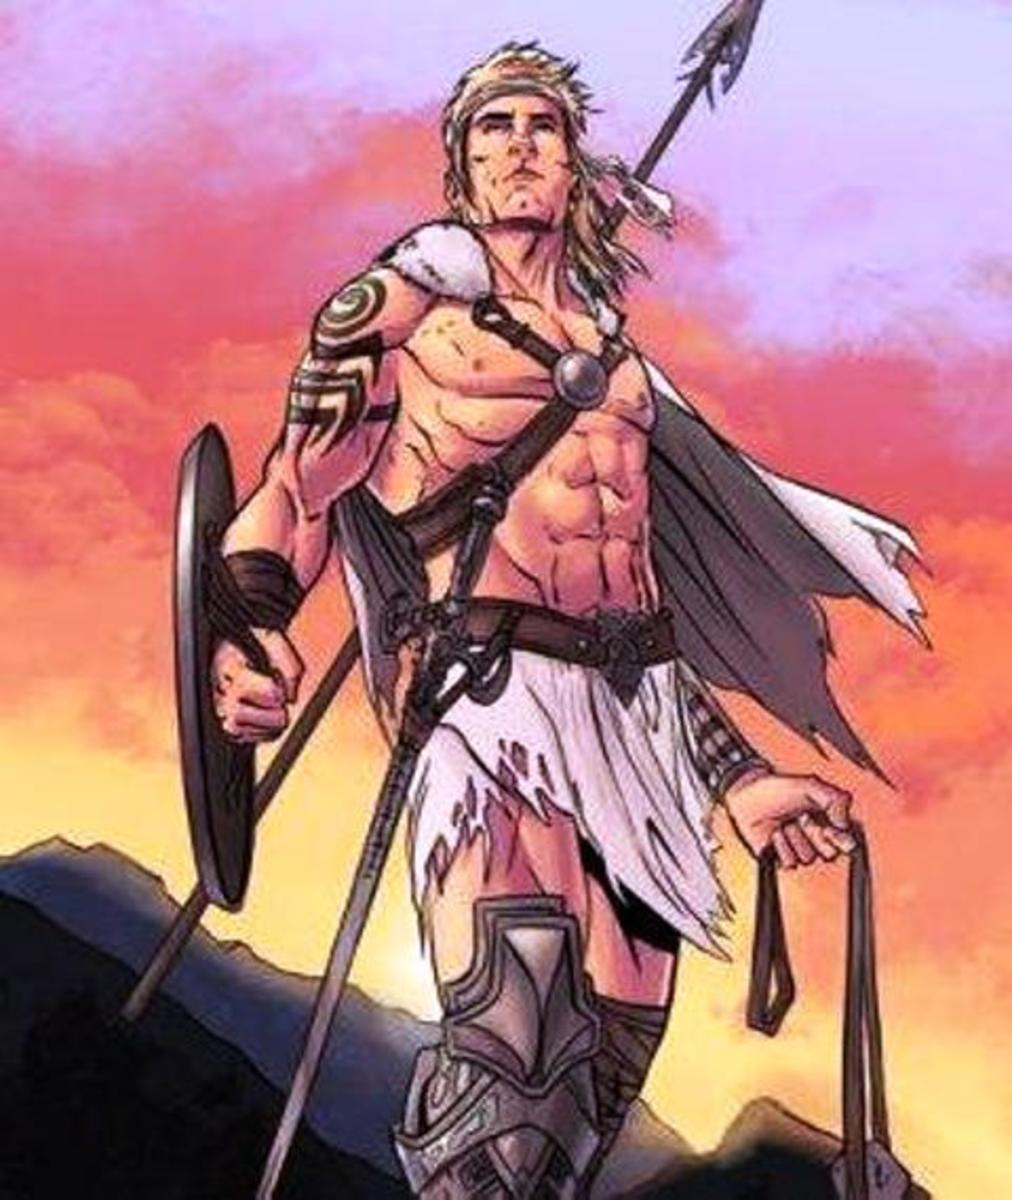 Cuchulainn the warrior who chose renown over long life - a magnet for the women, but turning away Morrigan cost him dear